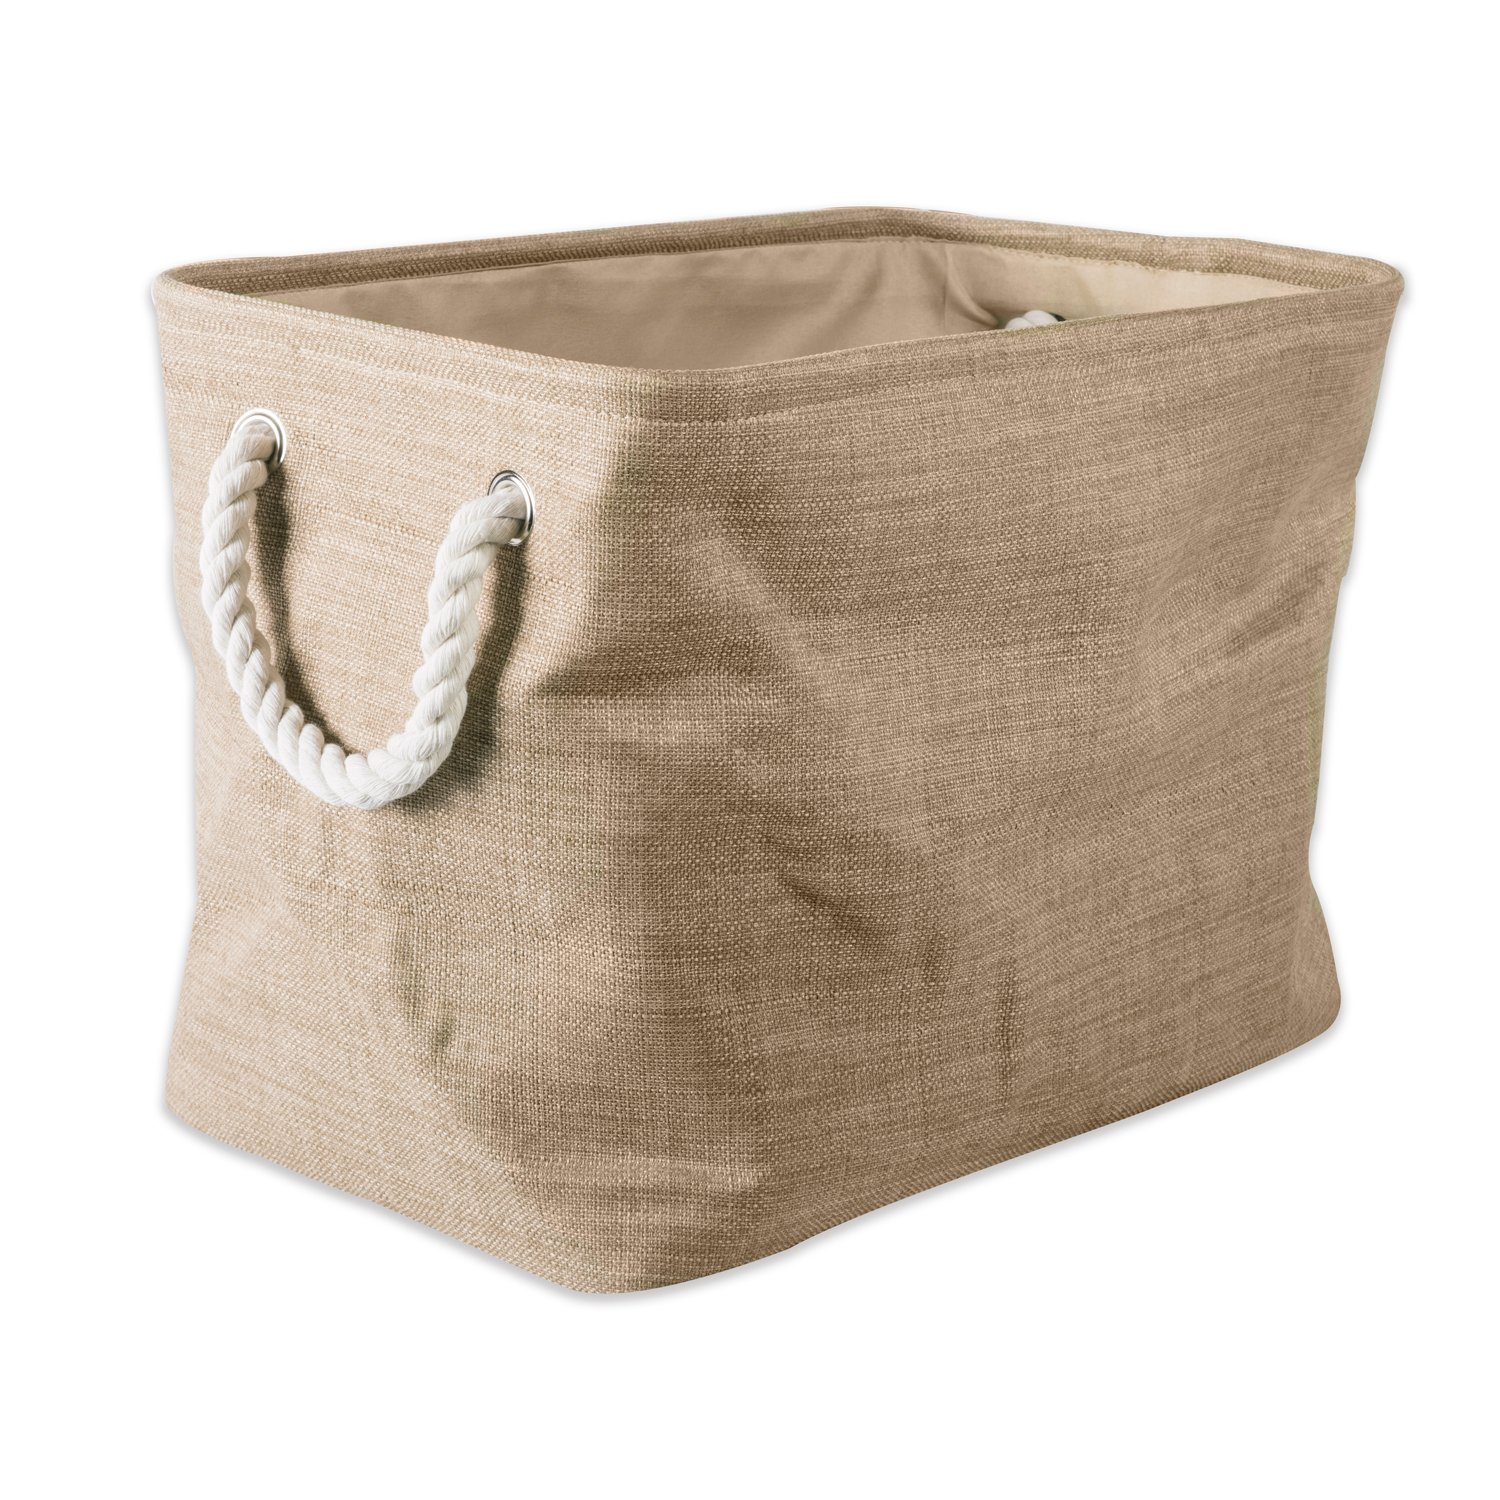 DII 5568 Collapsible Variegated Polyester Storage Bin, Medium, Taupe